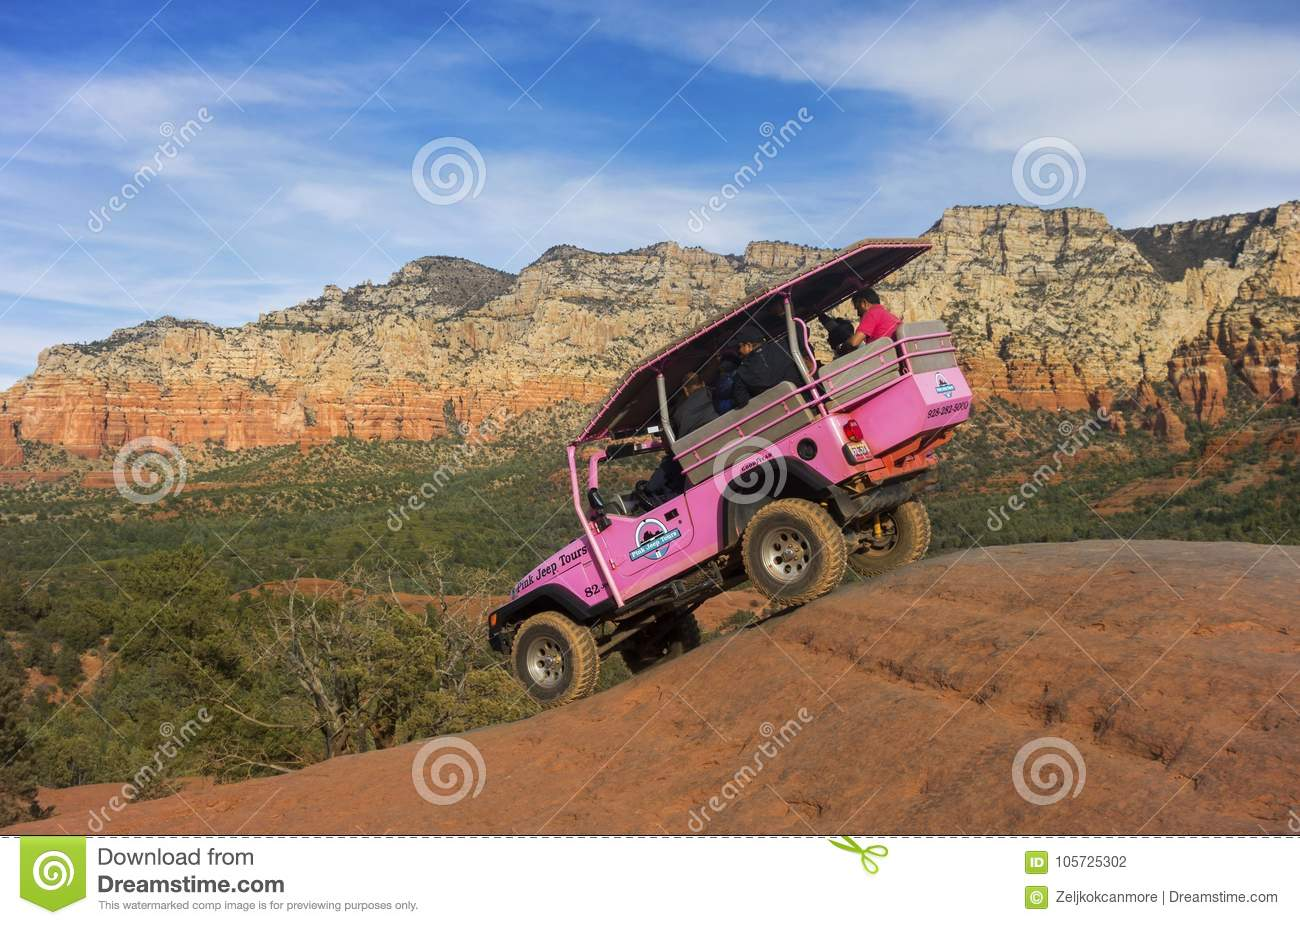 Jeep Off Road Terrain Vehicle rose près de Sedona Arizona